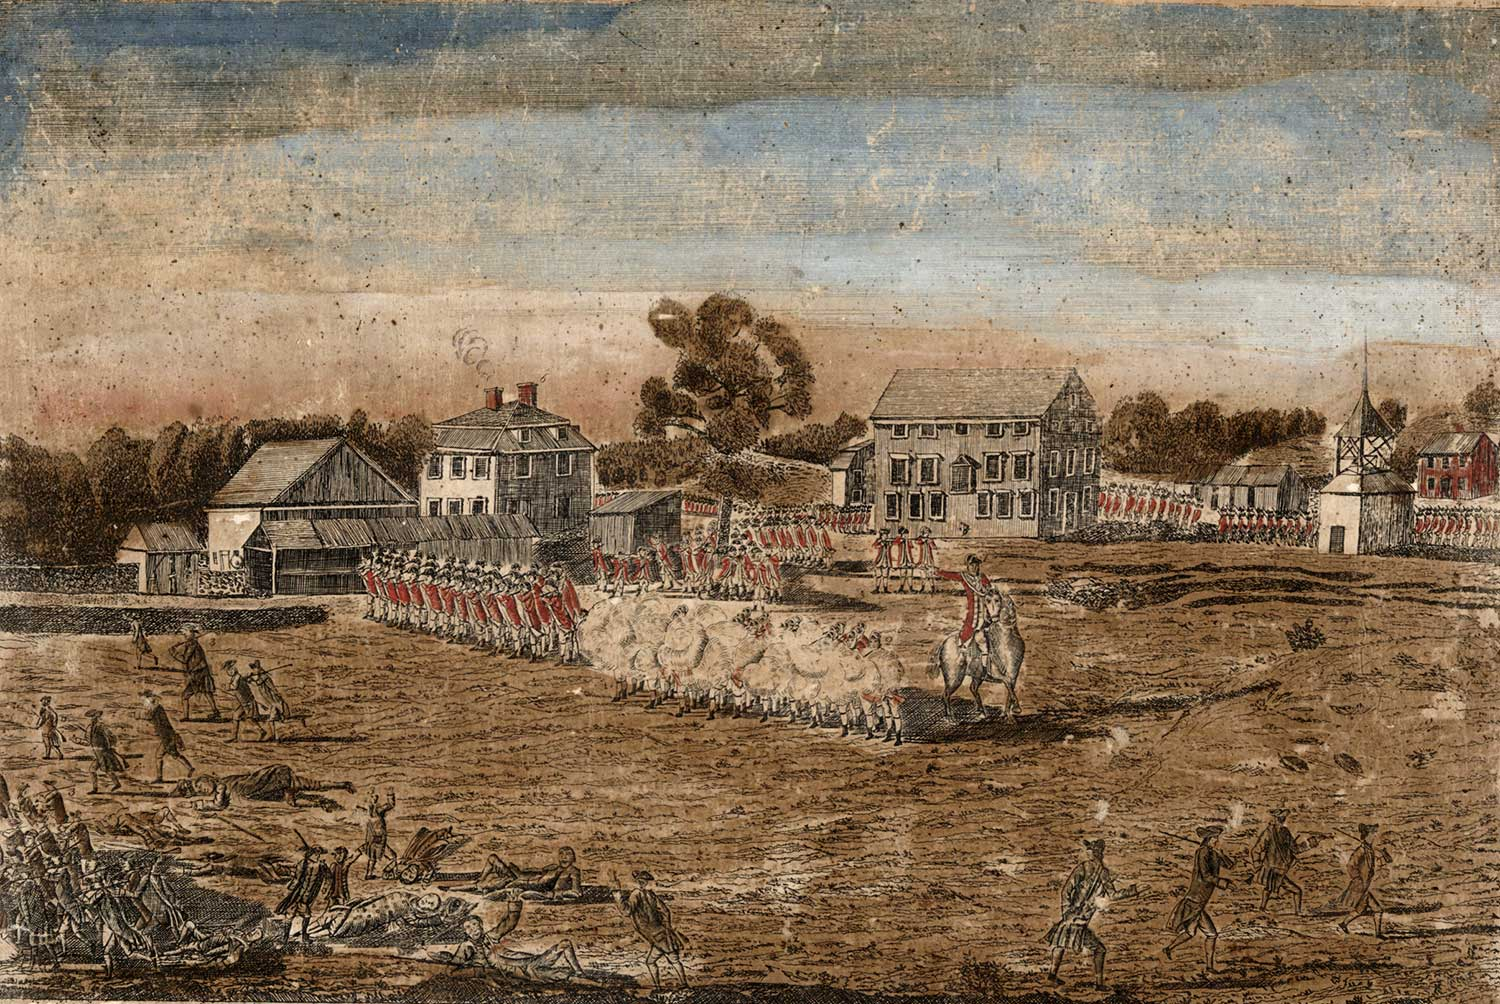 Amos Doolittle, The Battles of Lexington and Concord: Plate I, The Battle of Lexington, April 19, 1775.